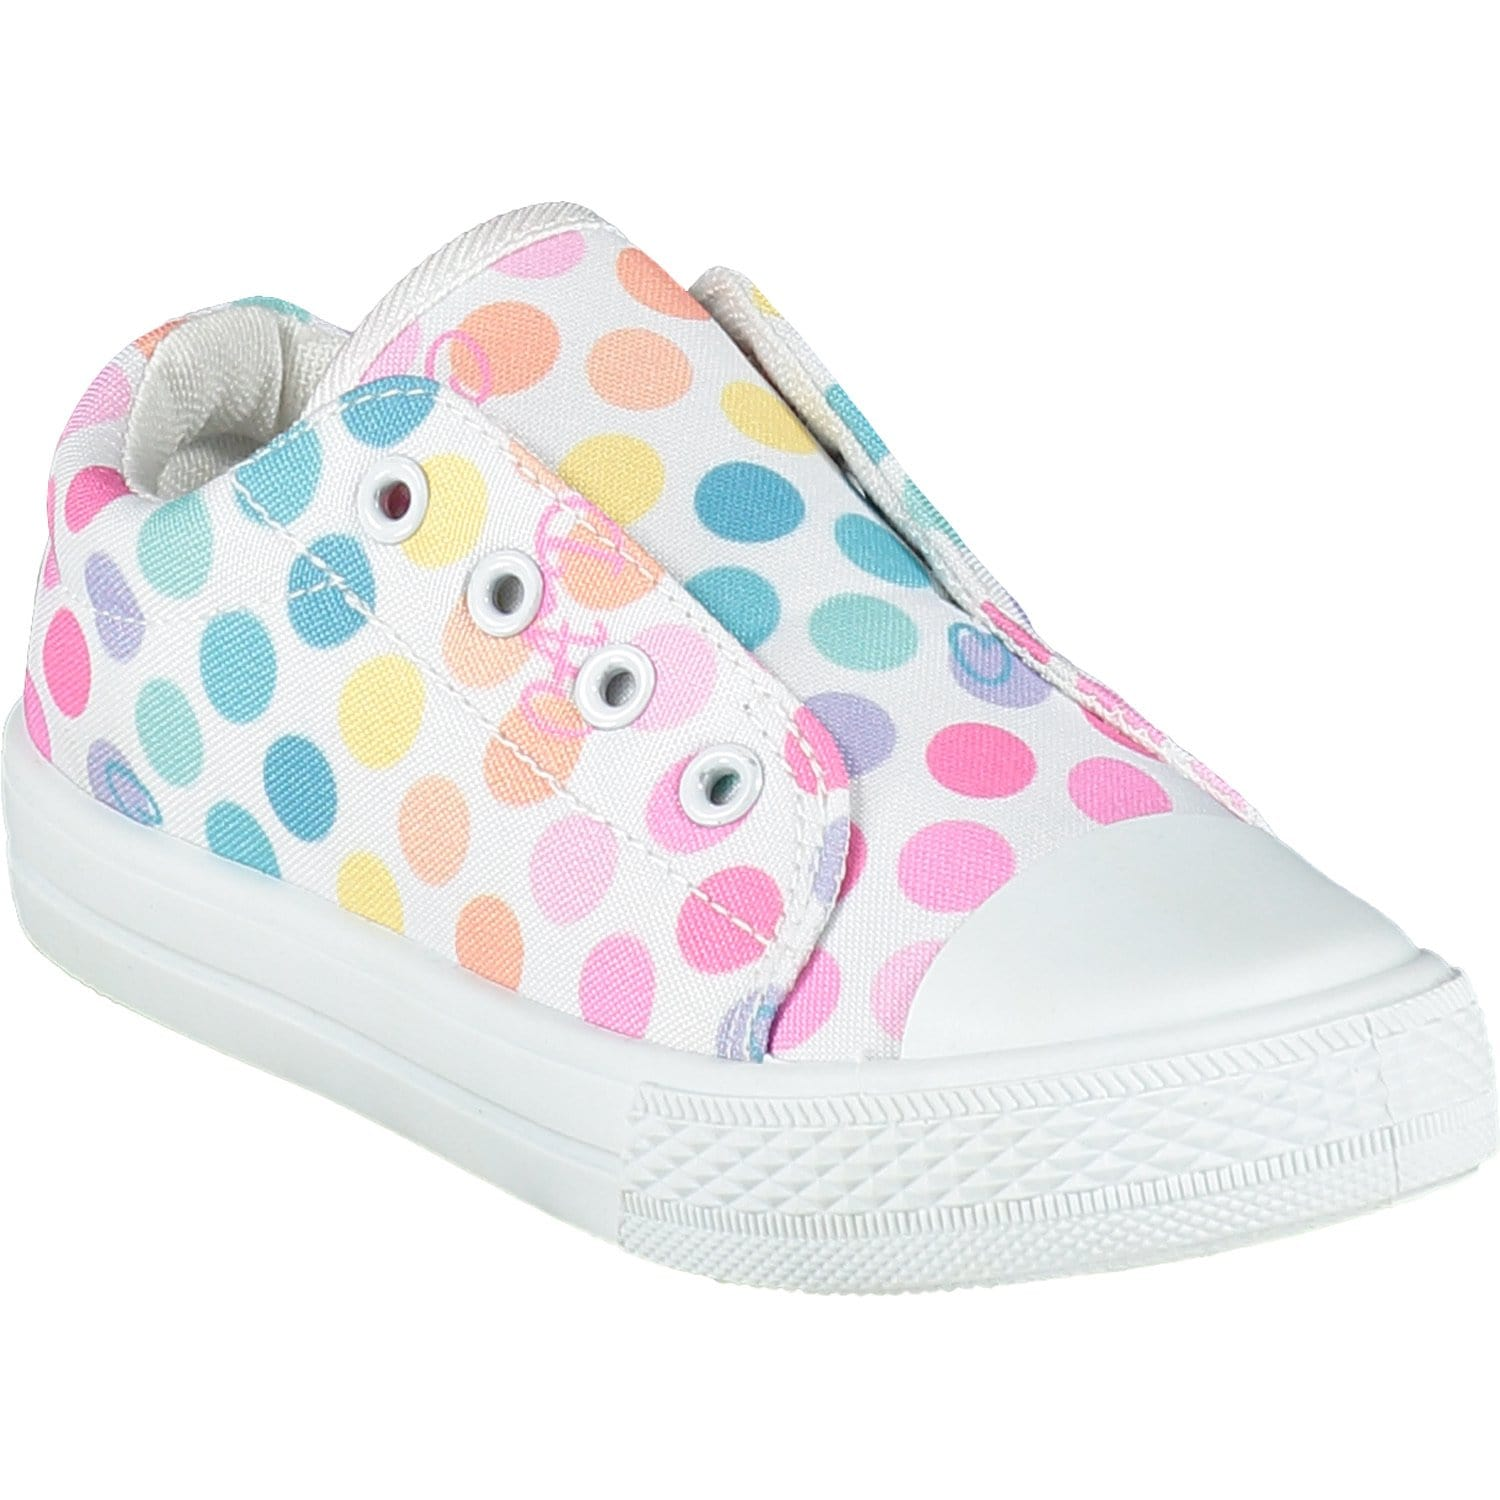 A DEE DOTTY CANVAS TRAINER